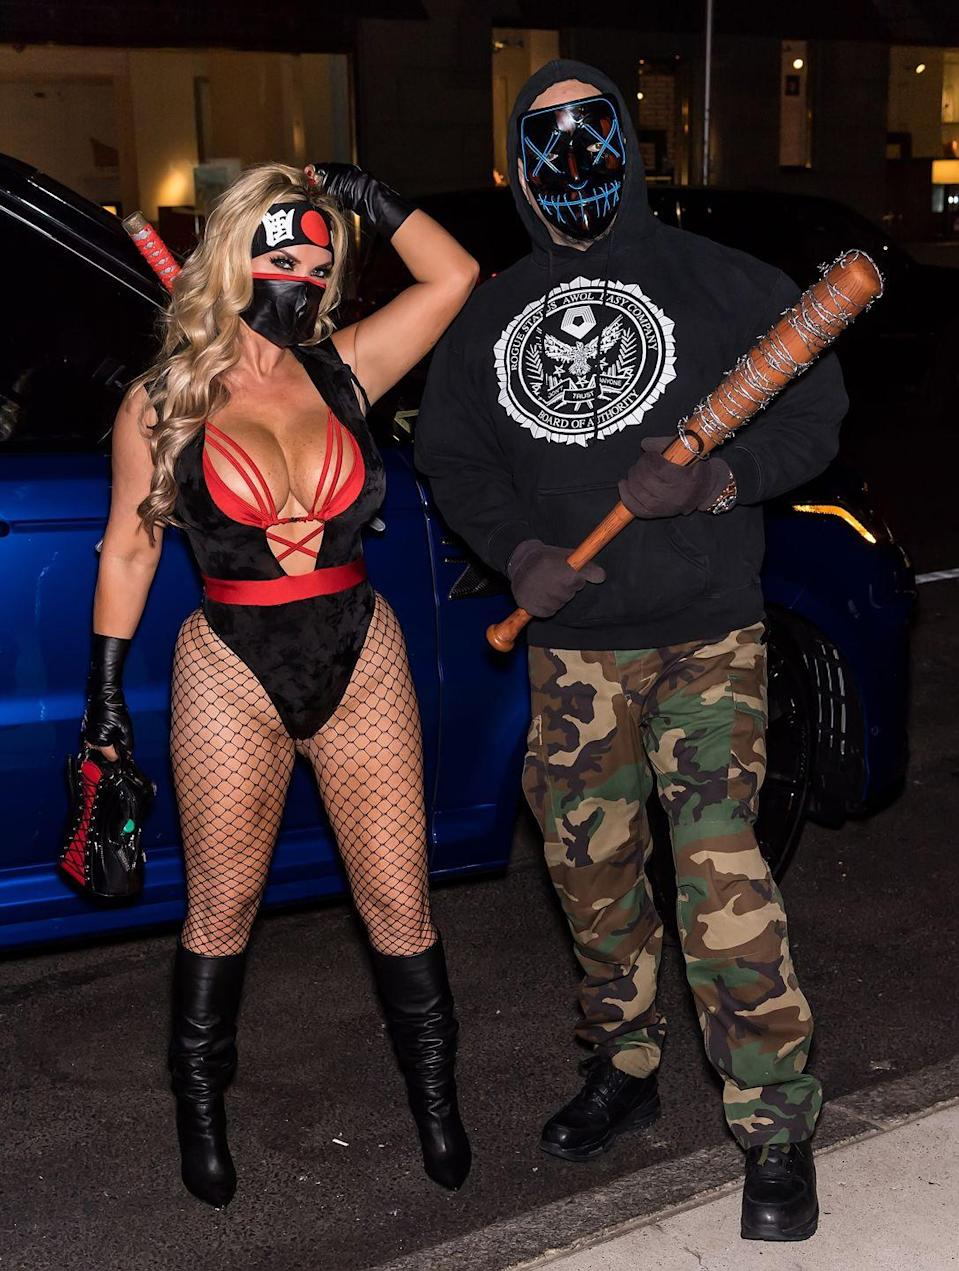 <p>To be fair, this doesn't qualify as a *true* couples costume, since Coco and her husband Ice-T are dressed as separate characters (her, a ninja; him, a person in <em>The Purge</em>). But since they coordinated their bats and overall style, this one still counts.</p>